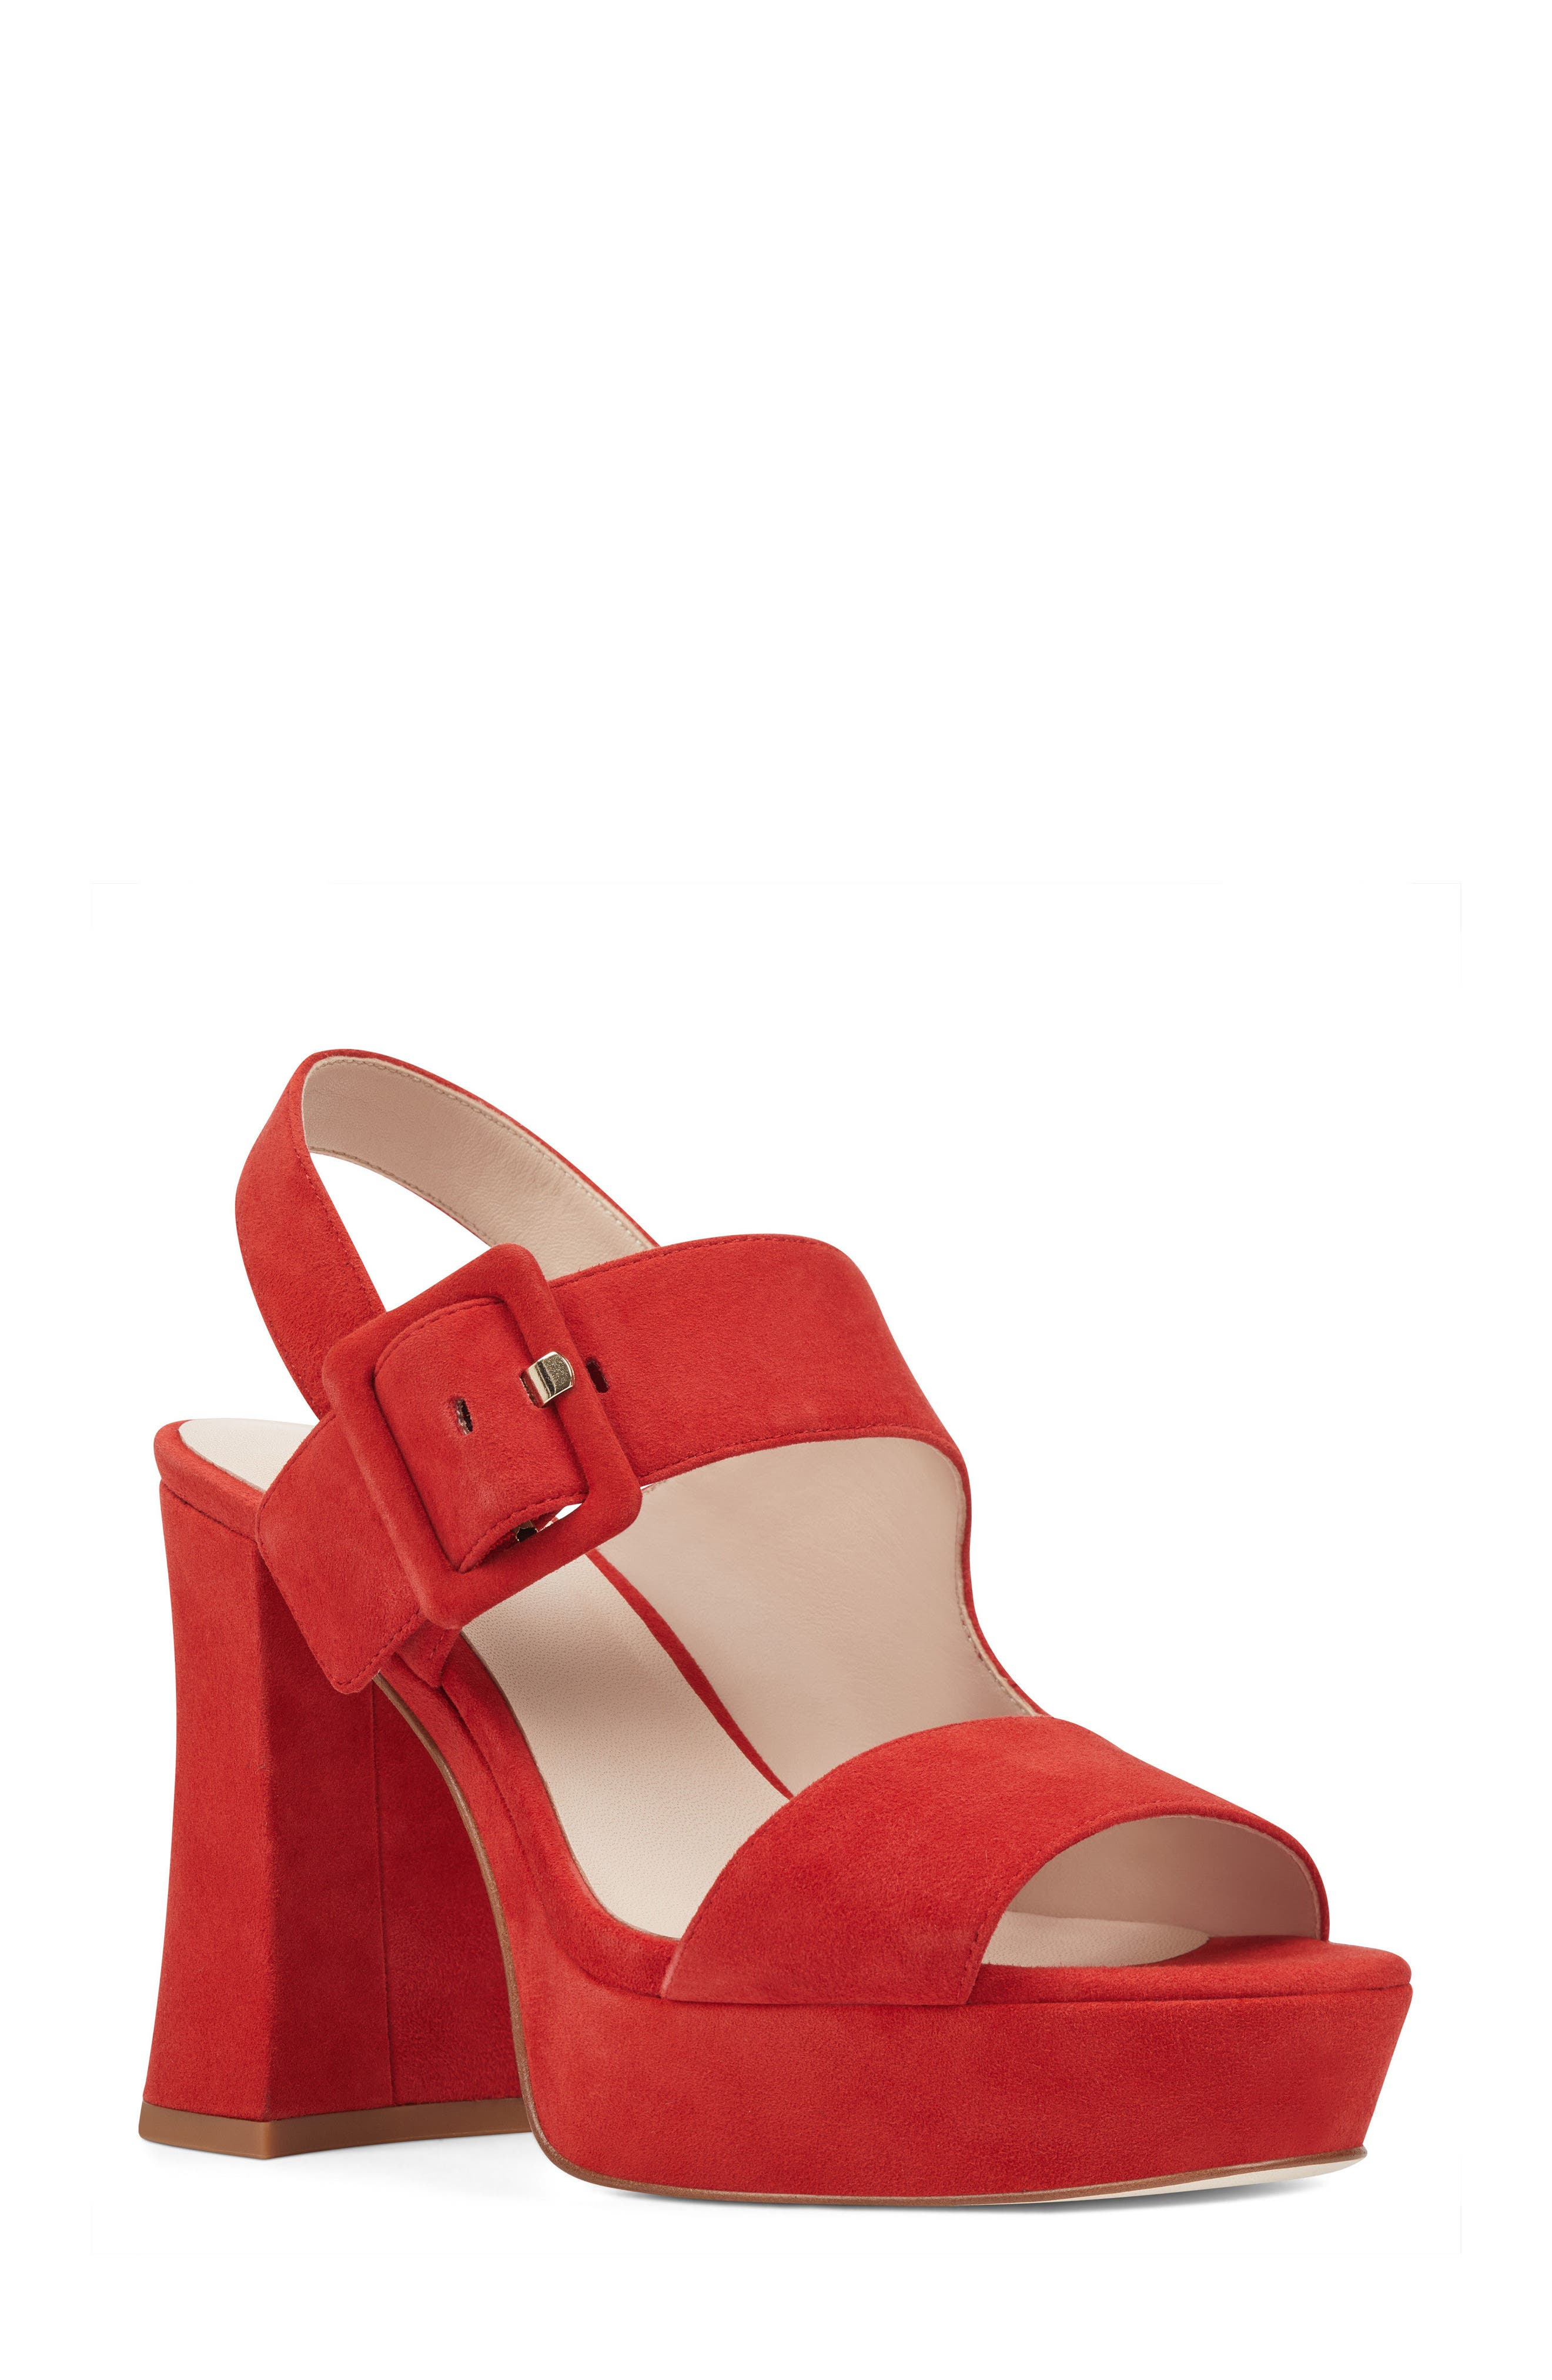 Lexine - 40th Anniversary Capsule Collection Platform Sandal,                             Main thumbnail 1, color,                             Red Leather